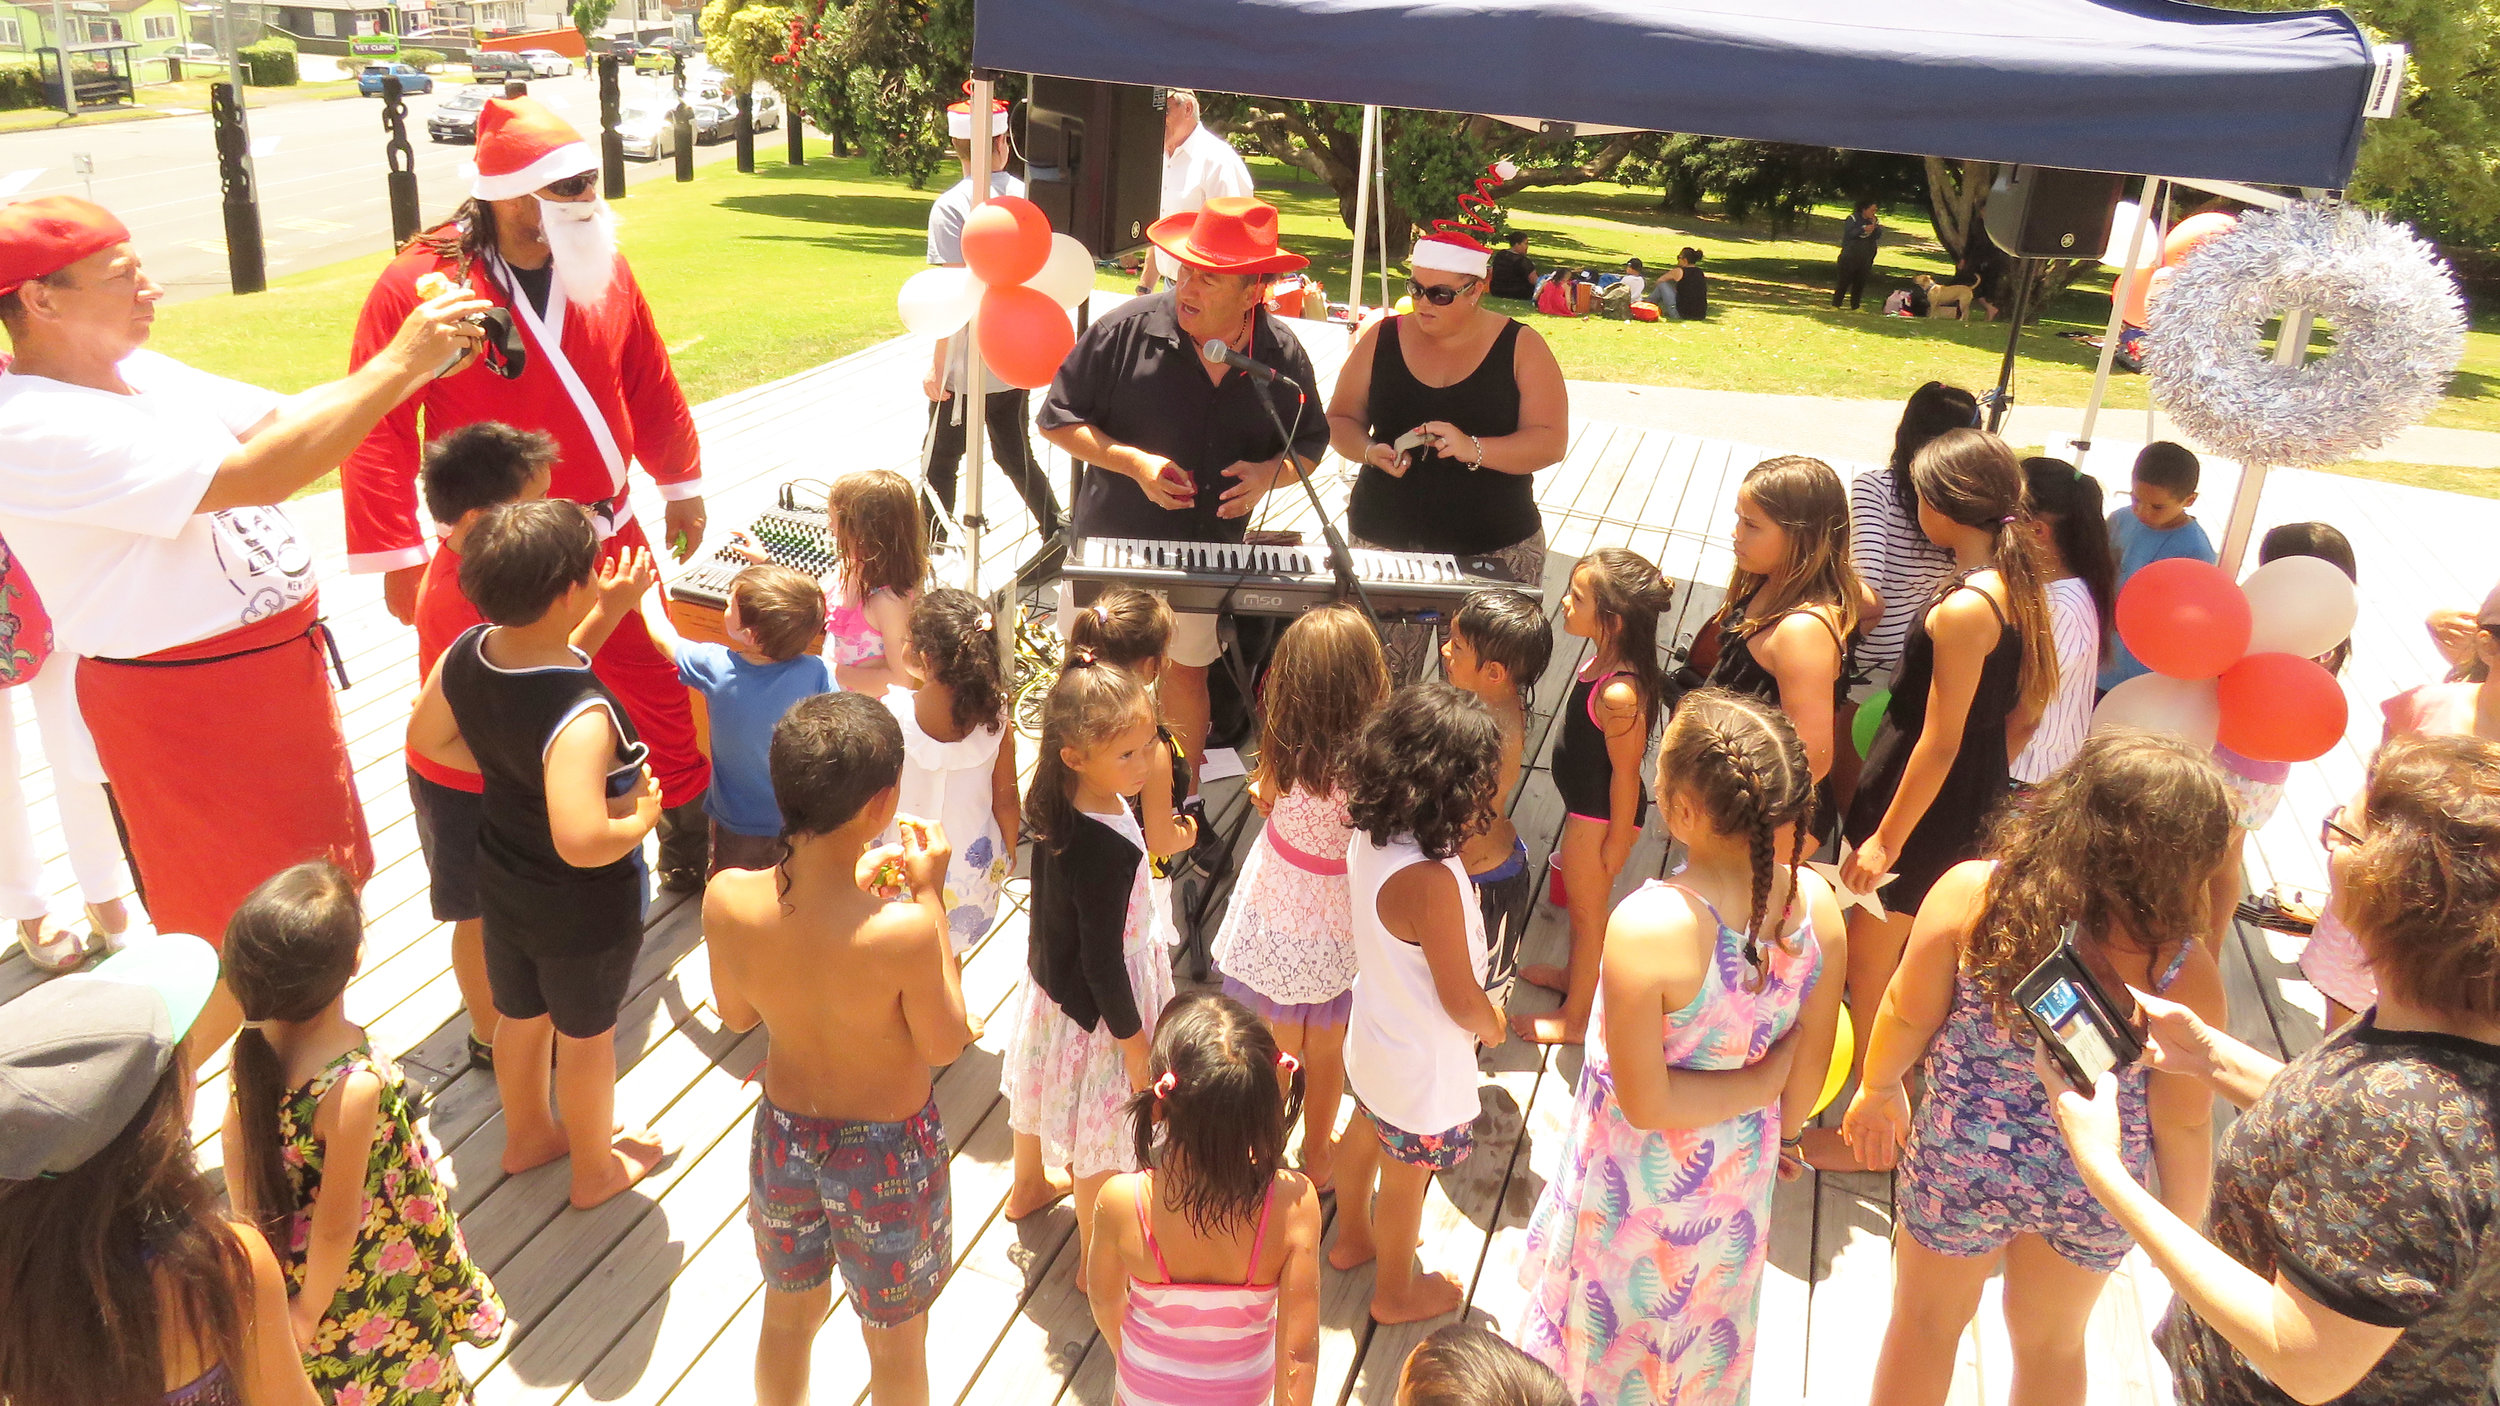 Held a Community Christmas Whanau Day - for over 50 whānau within our Whare 4 Whanau Transitional houses and the community, thanks to the generosity of local philanthropists Paul and Cheryl Adams, Barbara Hogg and Angela. Families enjoyed a day filled with Christmas spirit, beautiful kai, music, activities for the kids and whānau, and amazing gifts for everyone to take home!